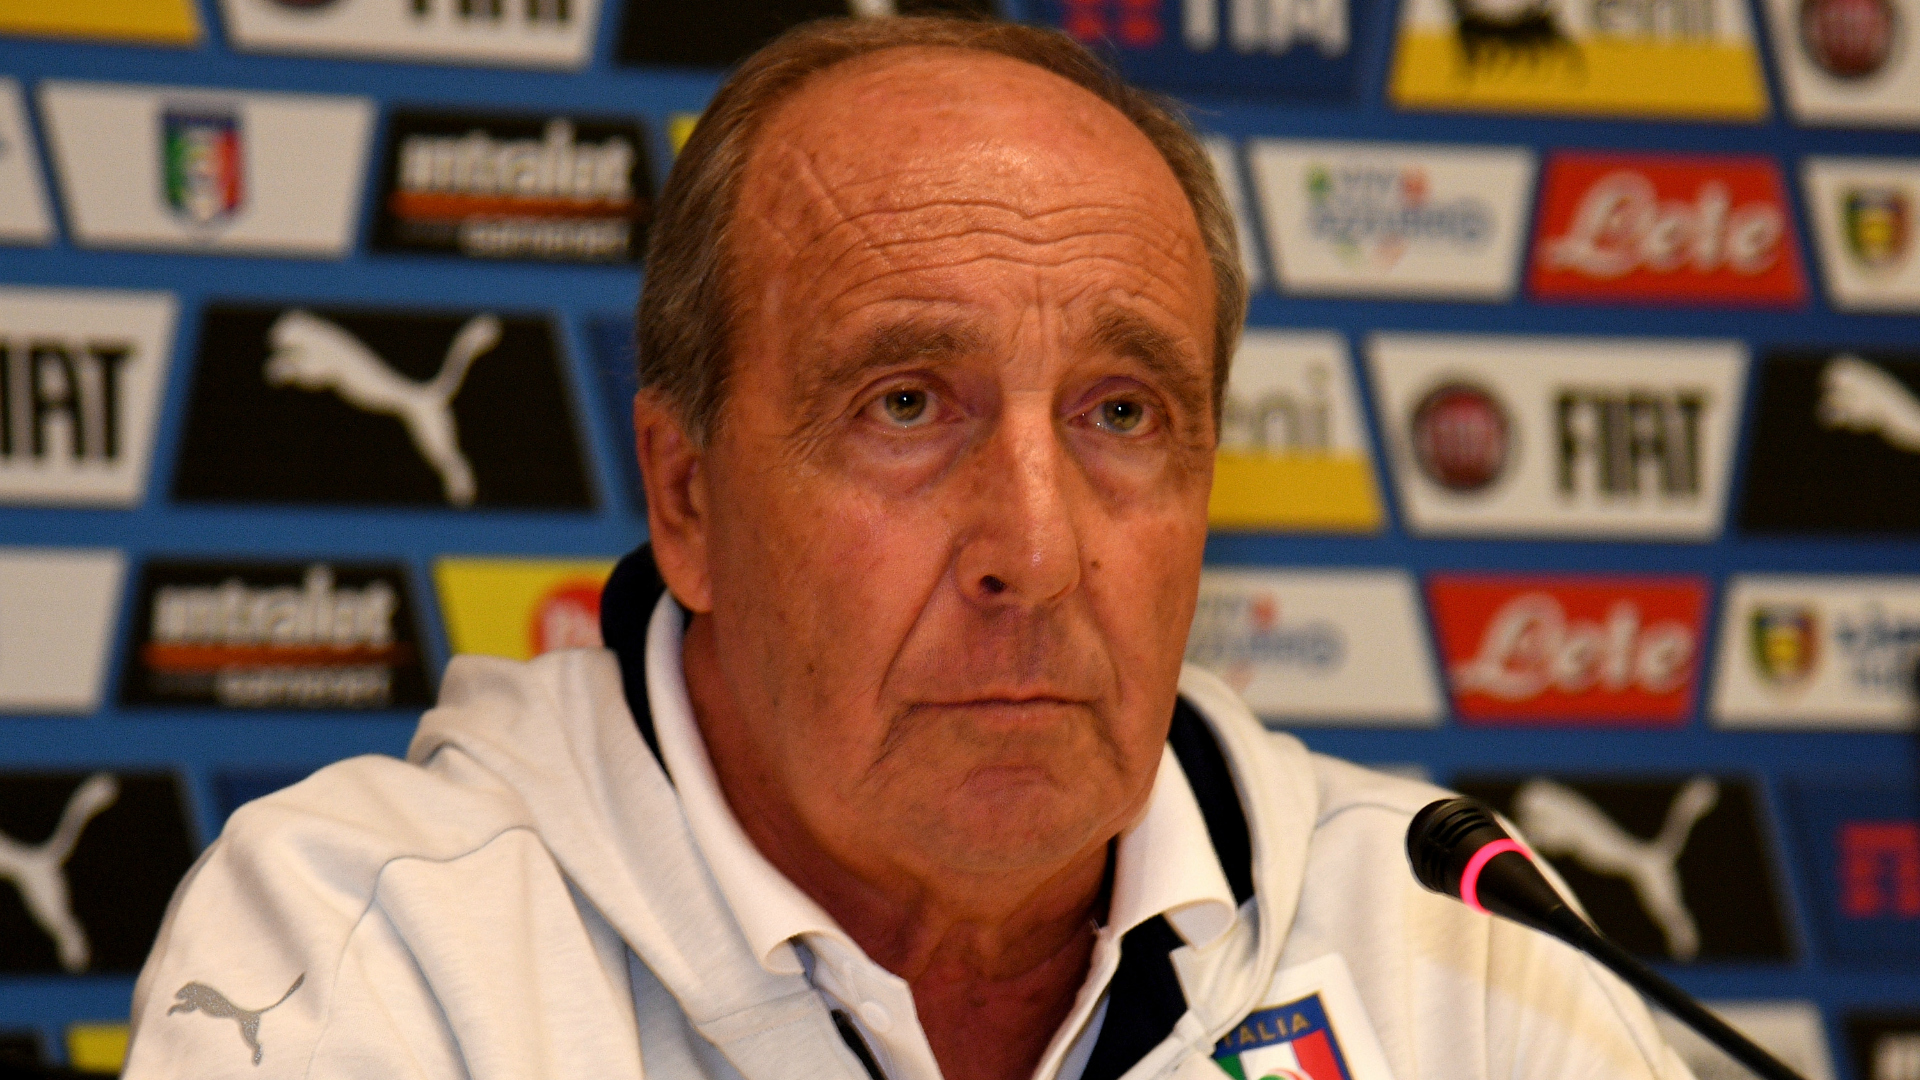 https://images.performgroup.com/di/library/GOAL/9b/3d/giampiero-ventura-italy-coach-press-conference-22022017_1soif9jmslurm1l6bou7hbg5of.jpg